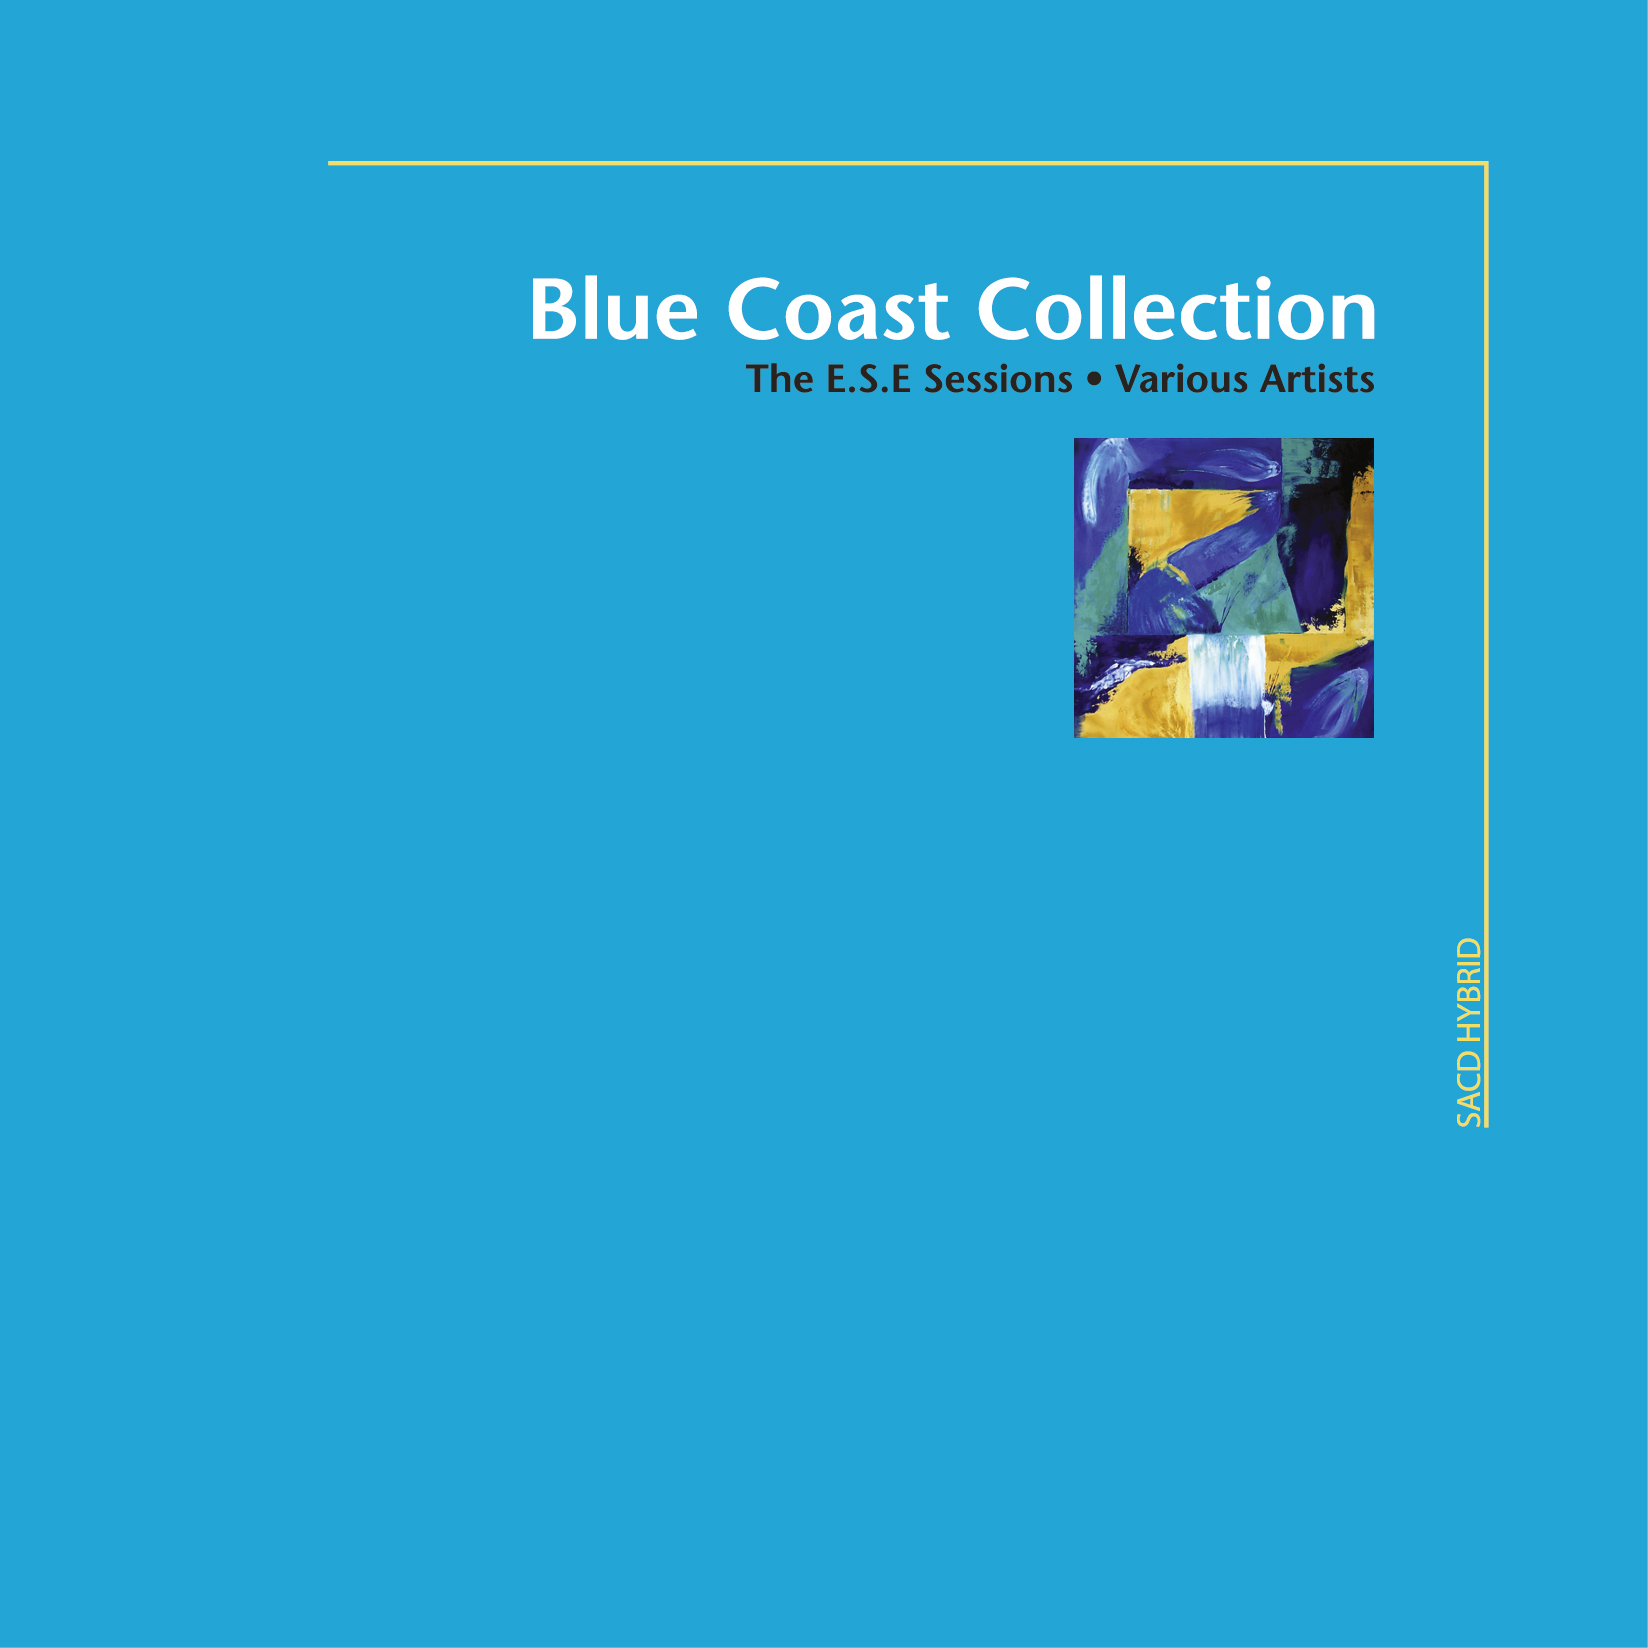 Blue-Coast-Collection_Cover.jpg